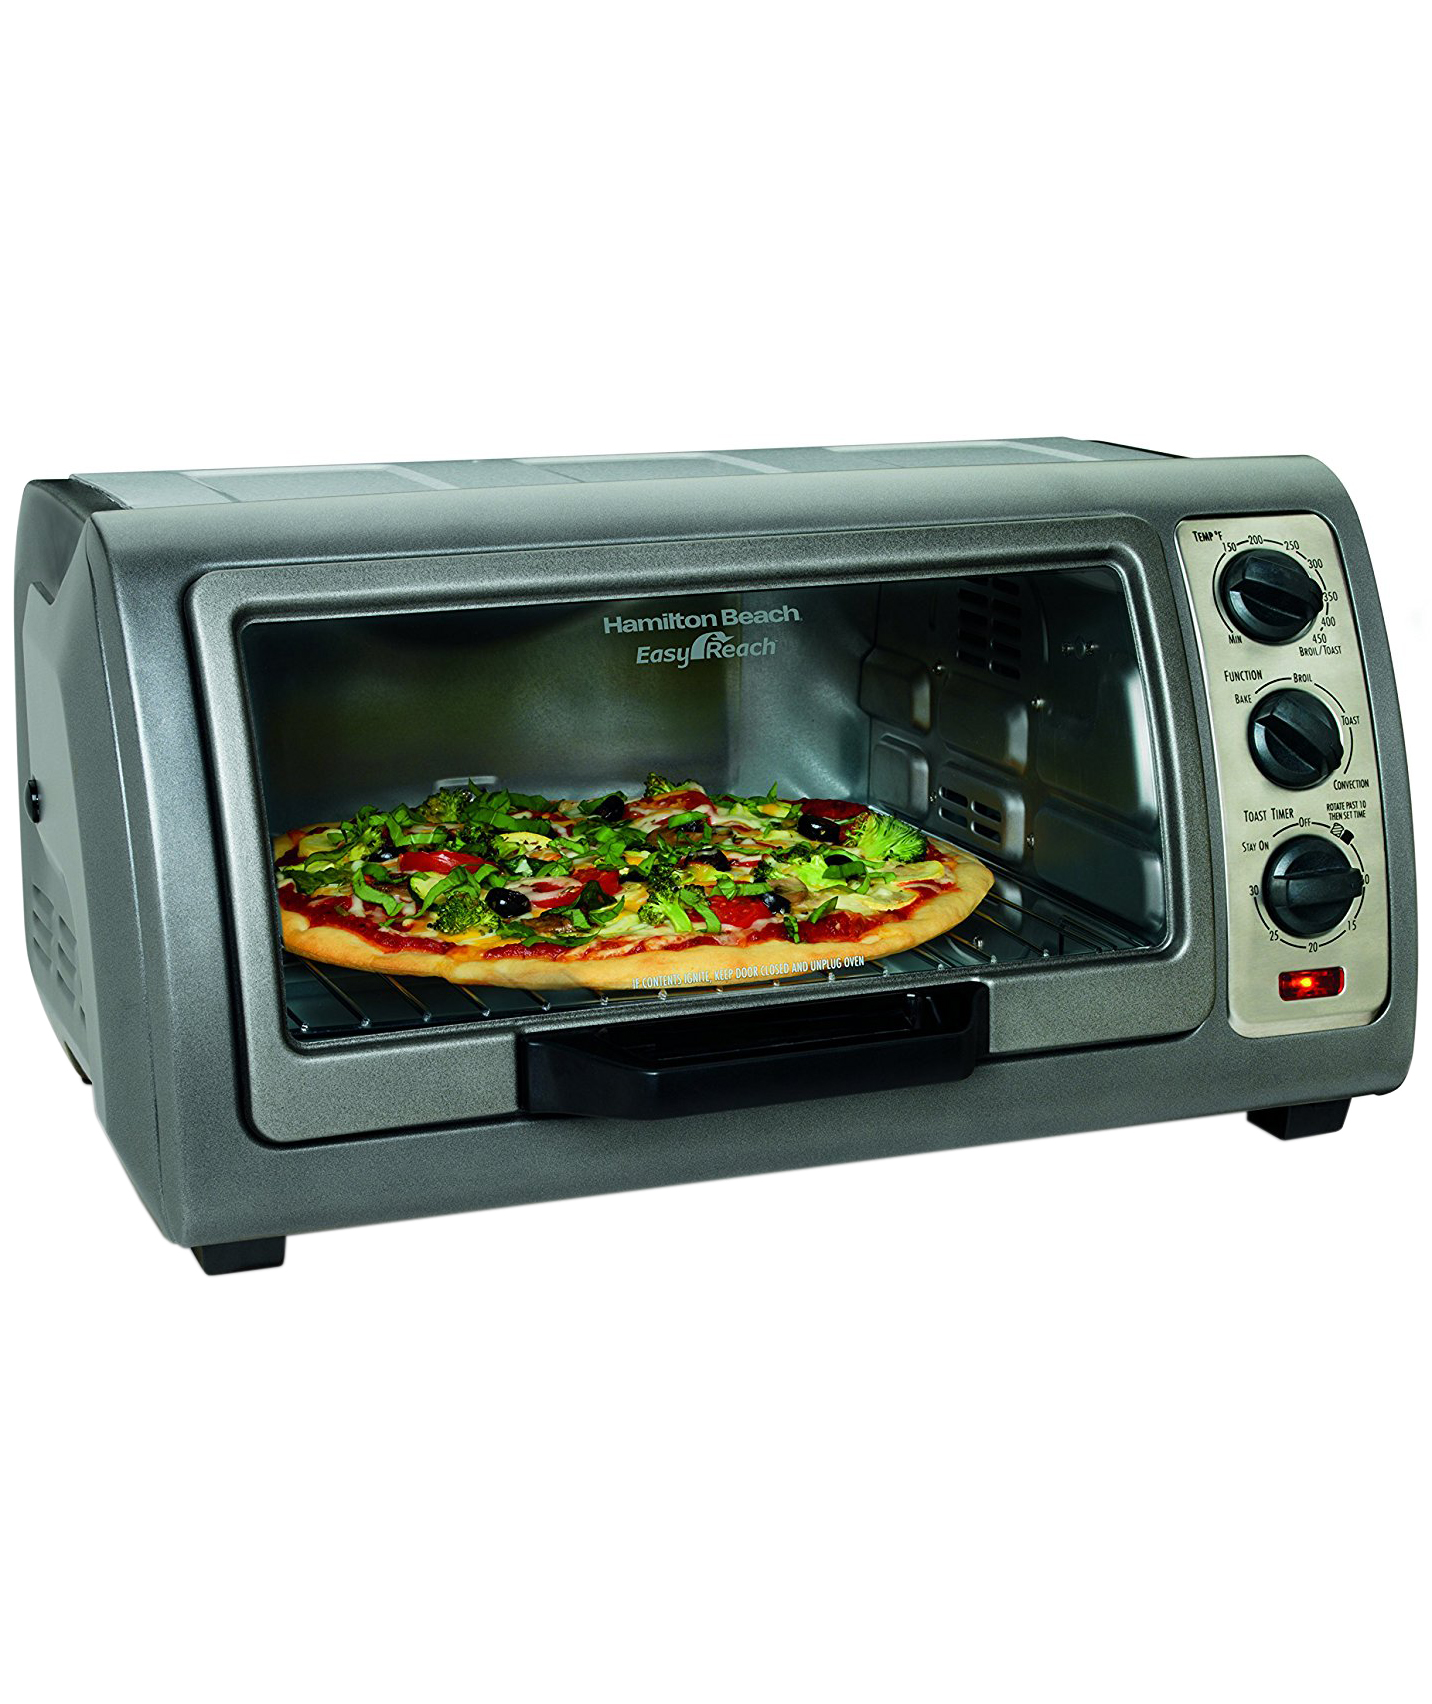 Hamilton Beach Easy Reach Oven with Convection